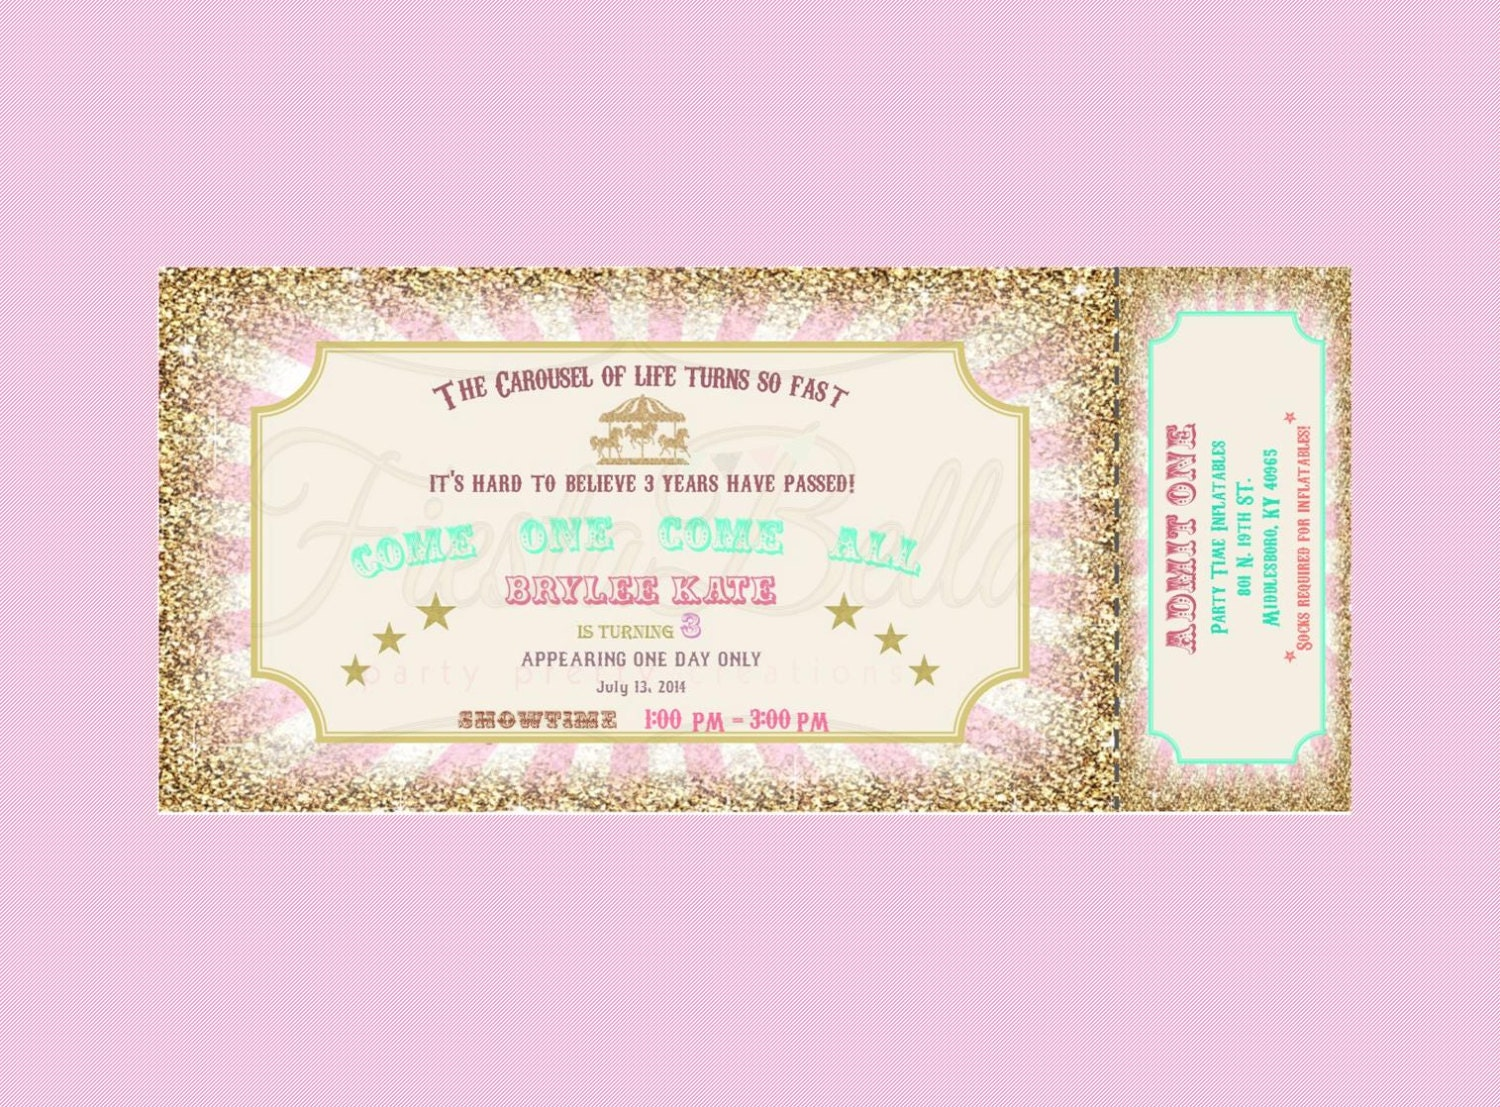 Carousel birthday ticket style Invitation Mint green pink